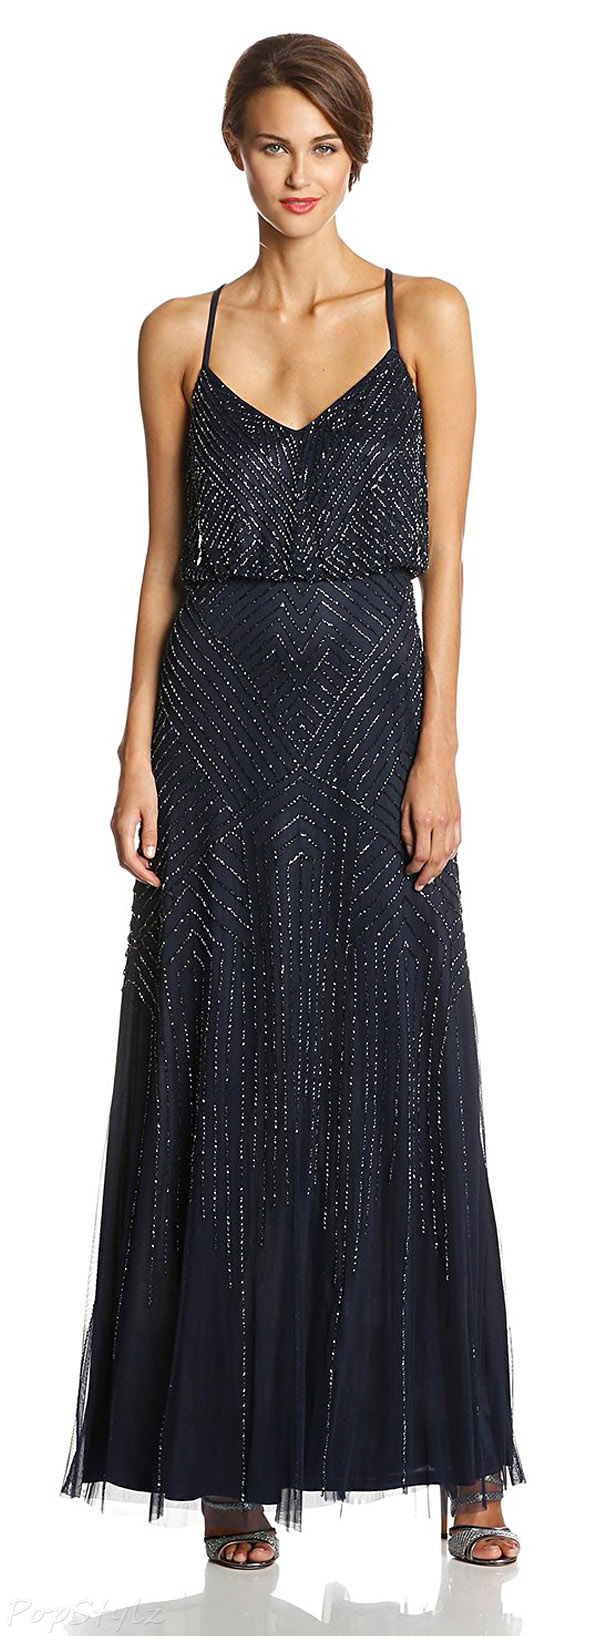 Adrianna Papell Midnight Blue Sleeveless Beaded Gown